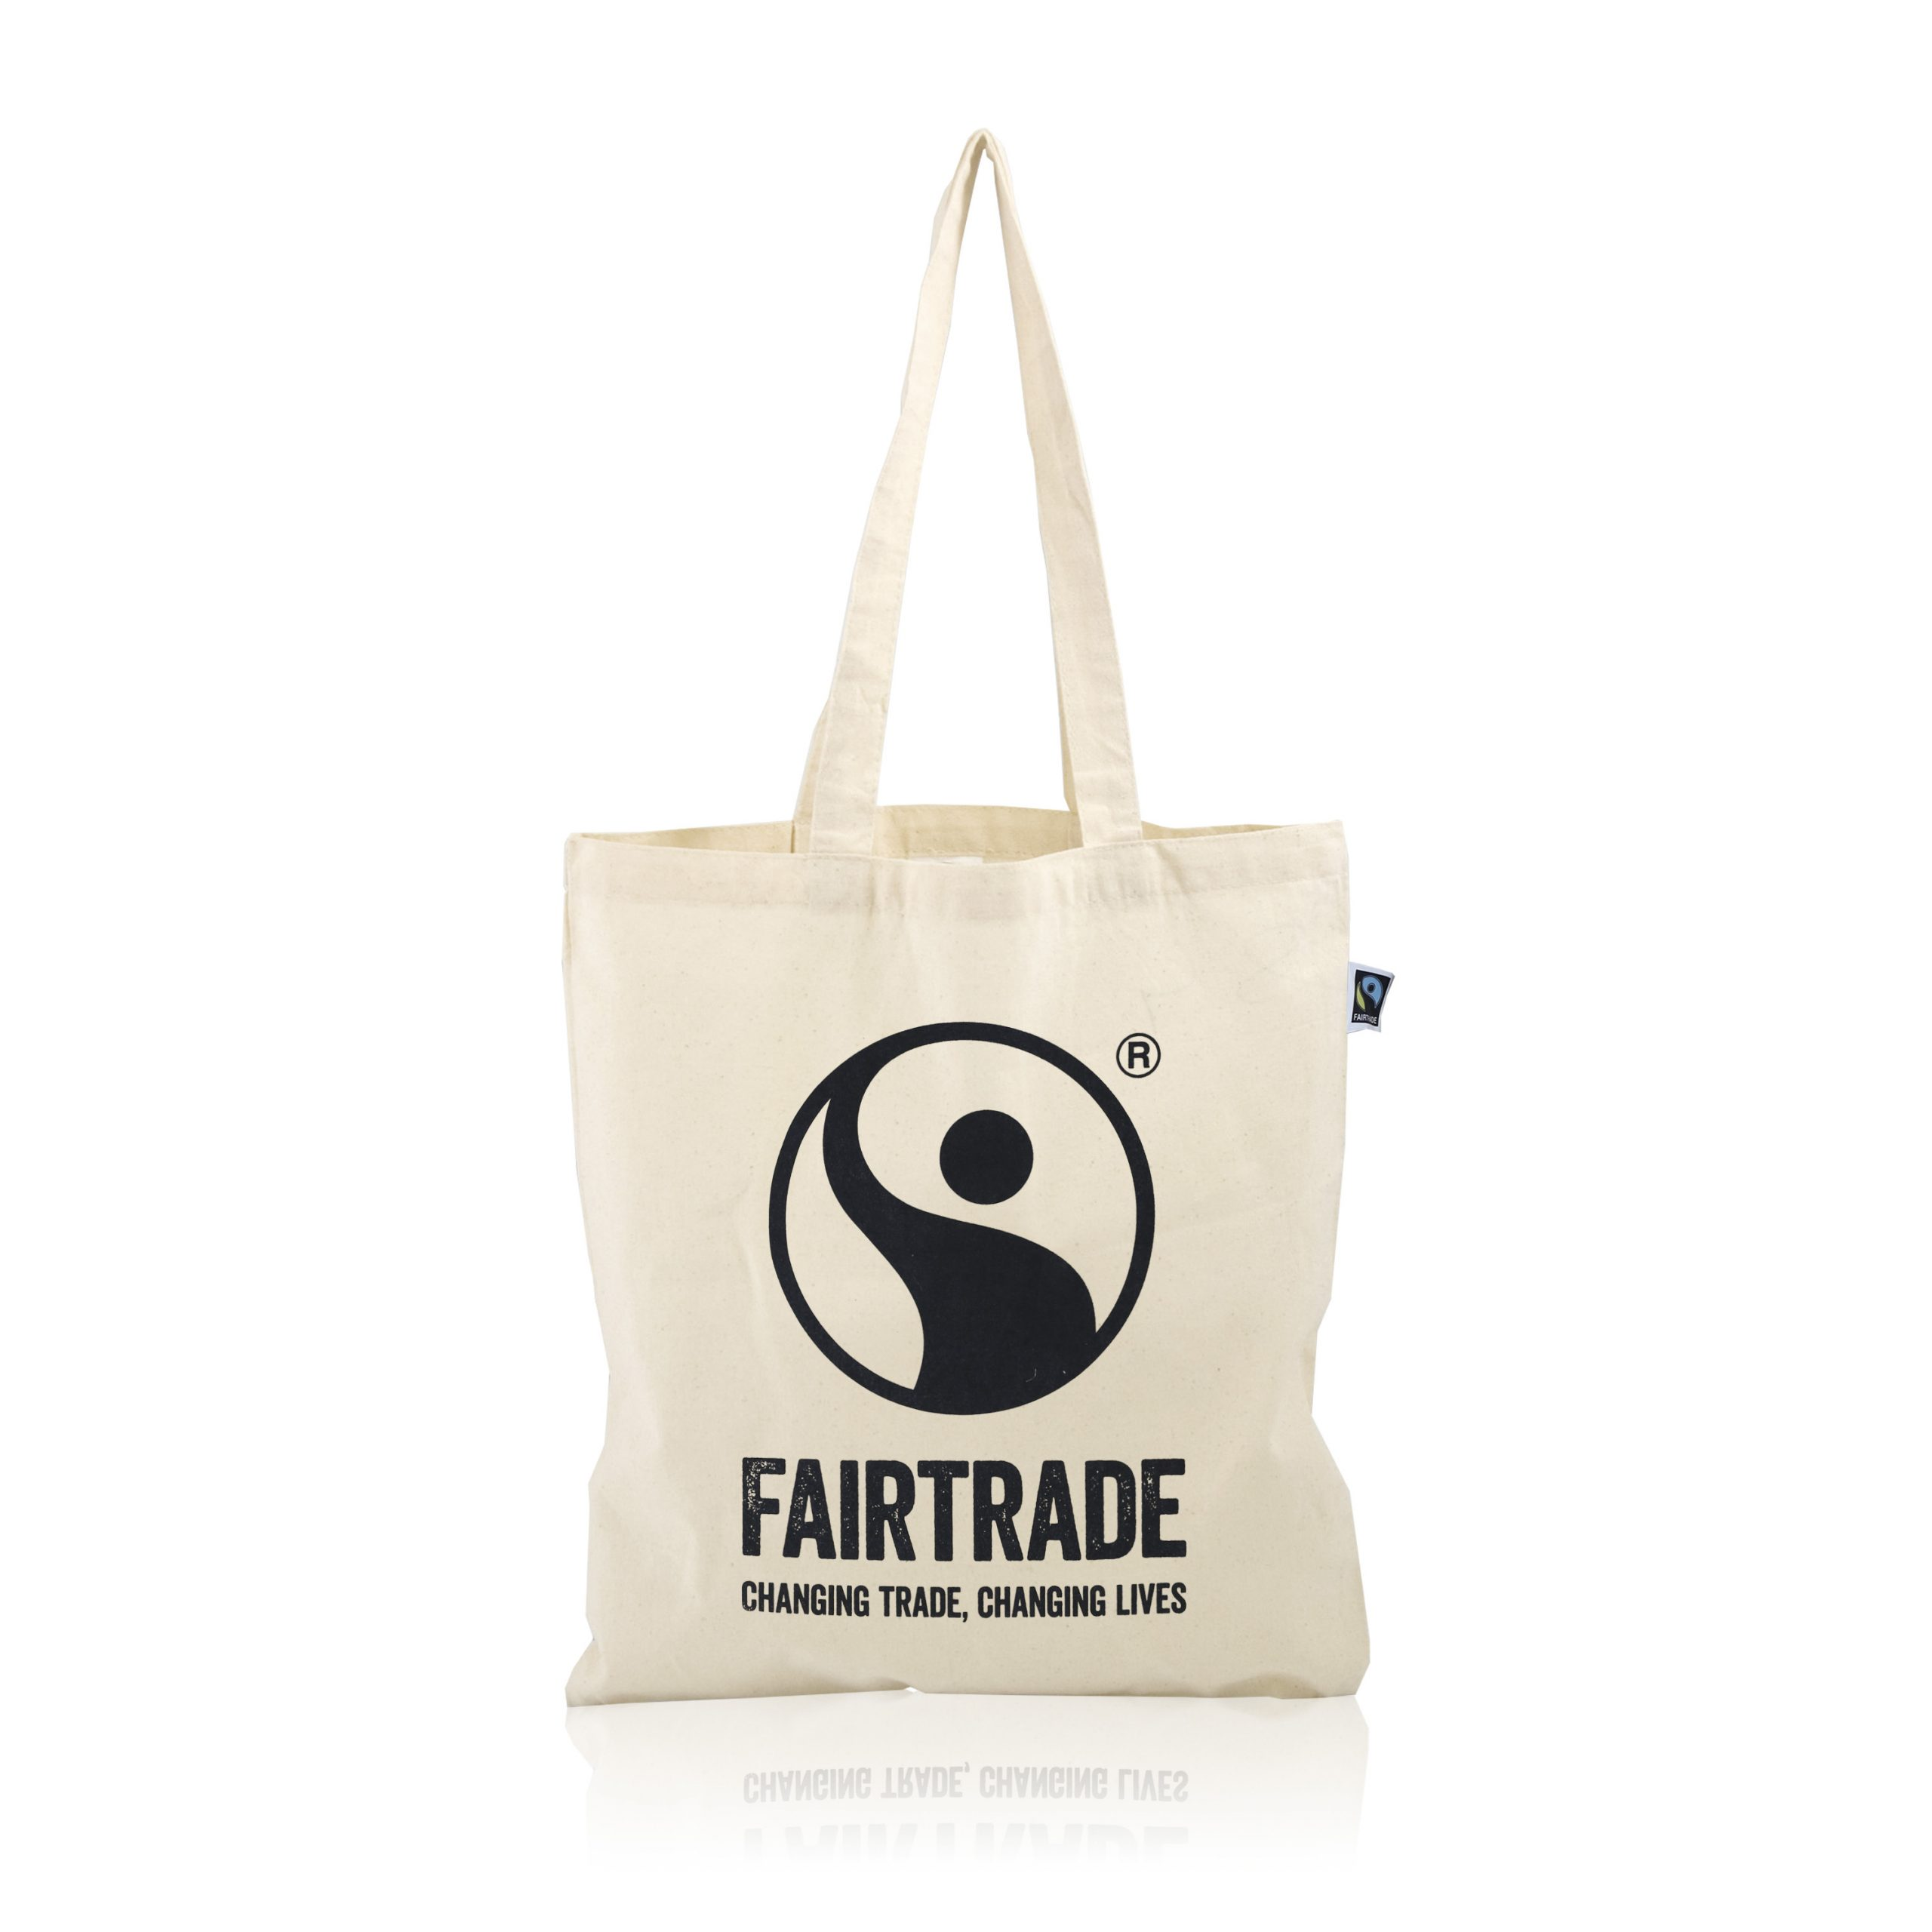 Sac en coton fairtrade